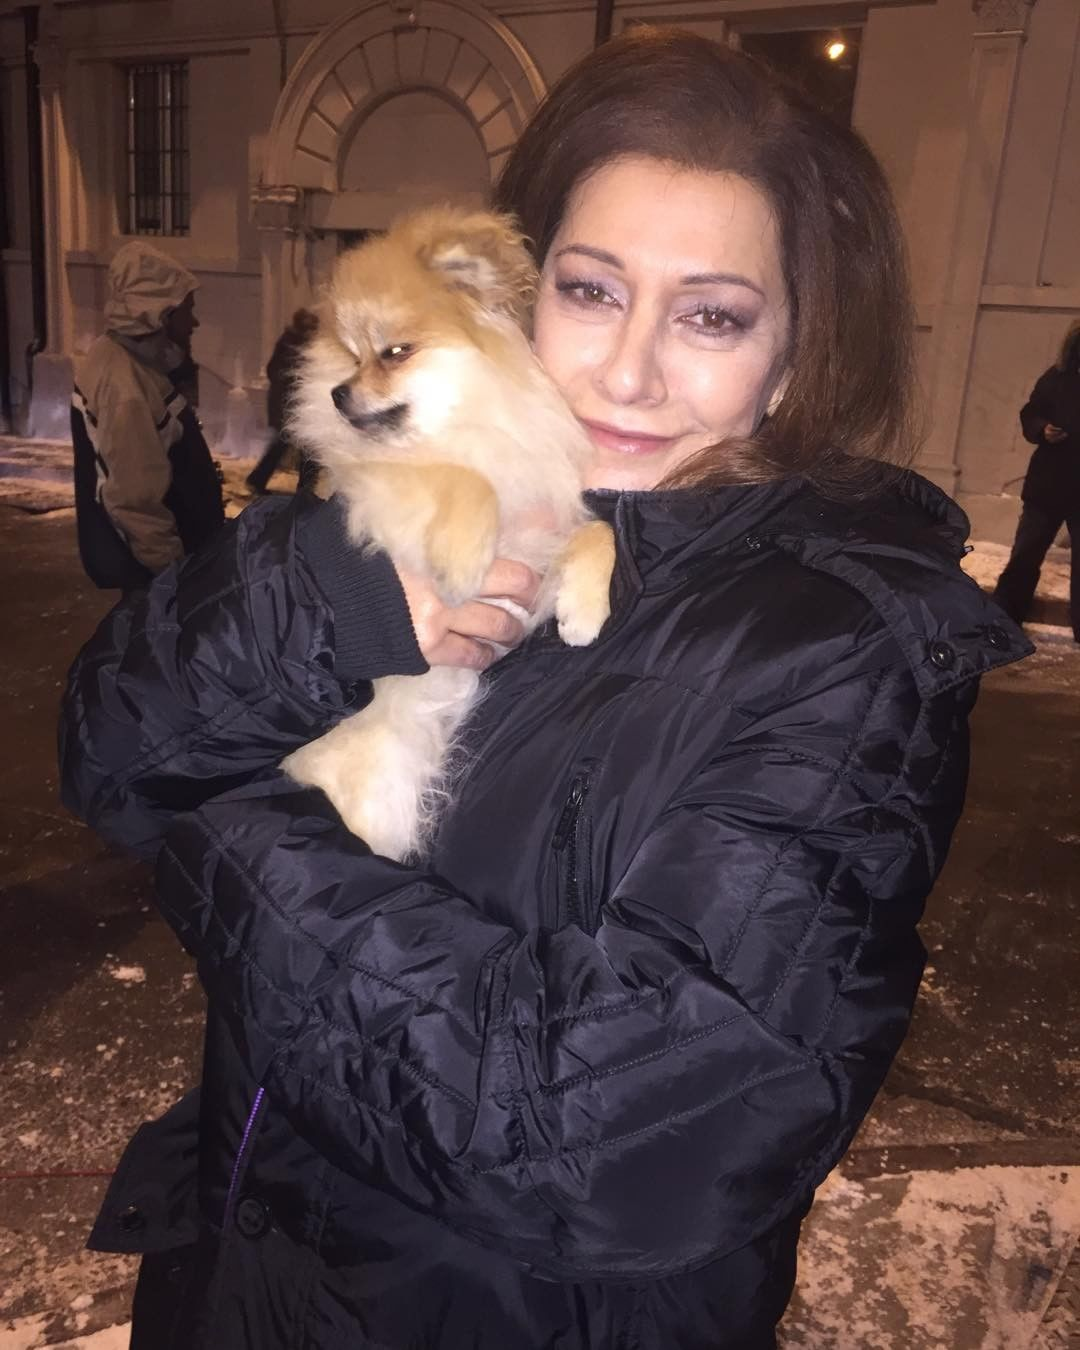 Marina Sirtis is carrying a puppy